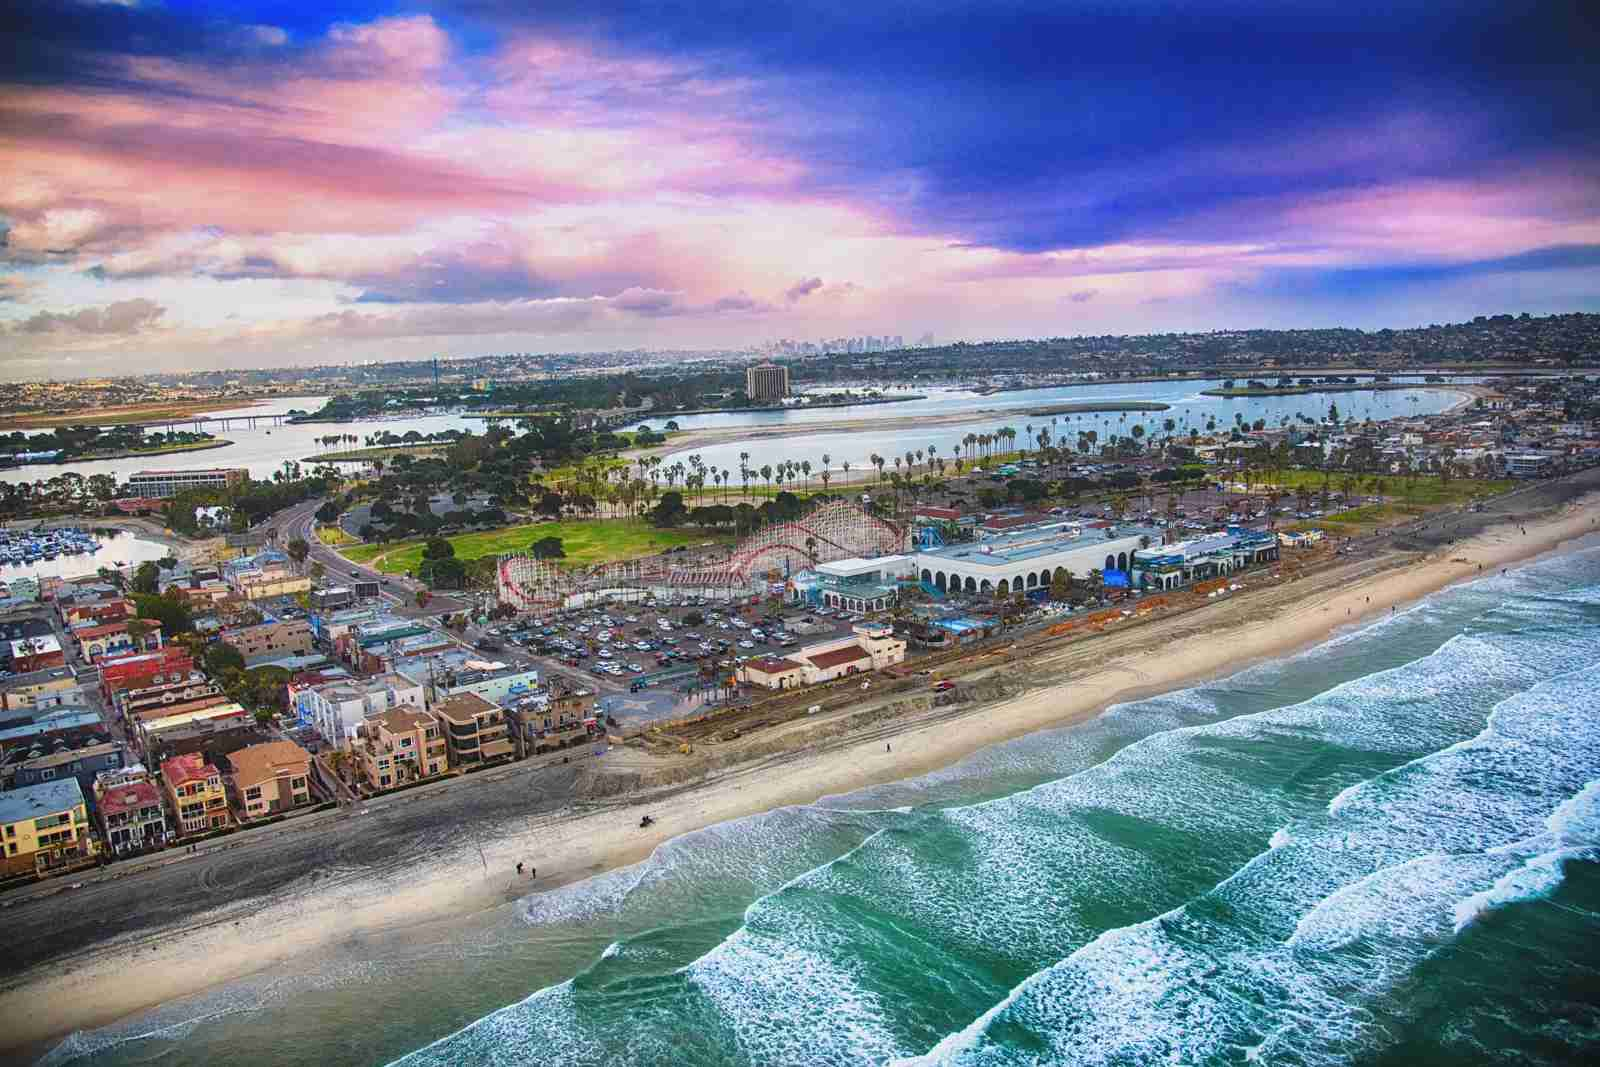 Mission Beach in San Diego. (Photo by Art Wager/Getty Images)